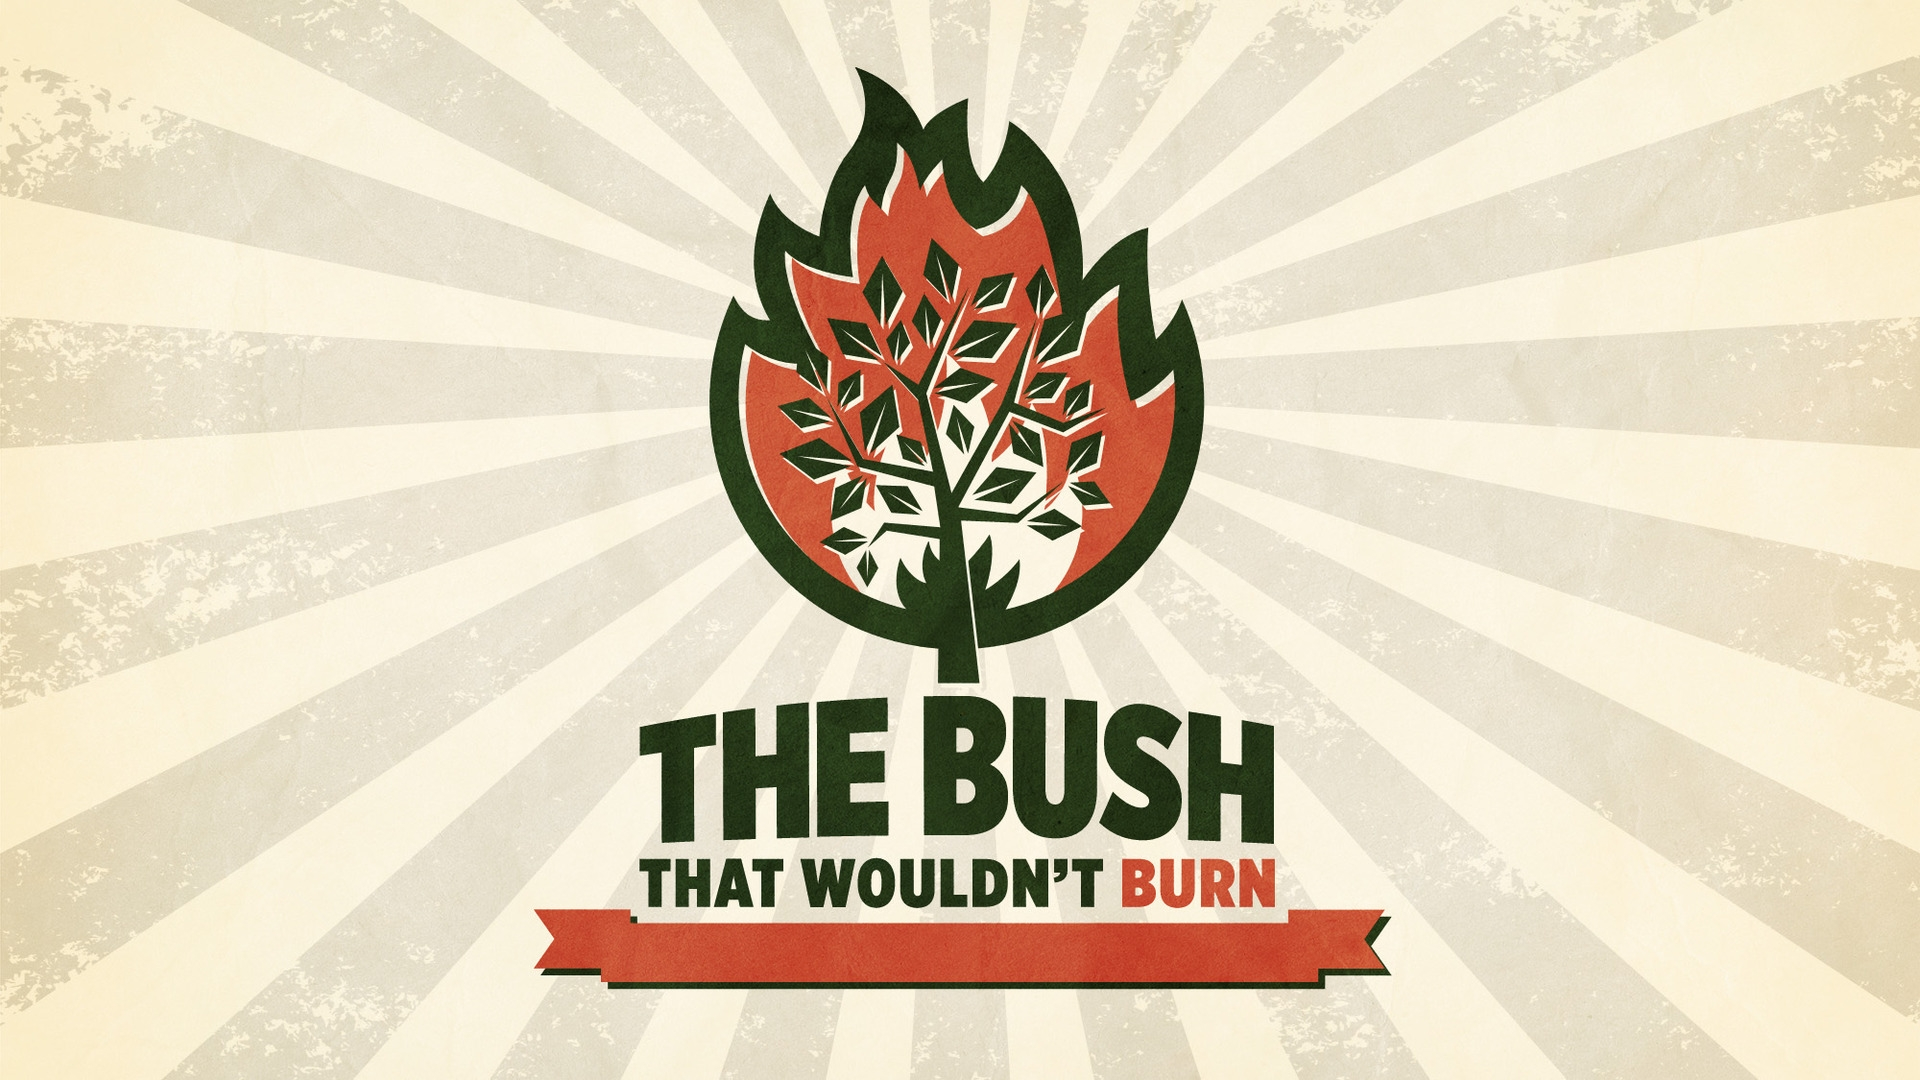 Sunday June 16, 2019 The Bush That Wouldn't Burn - Pastor Anthony Cox